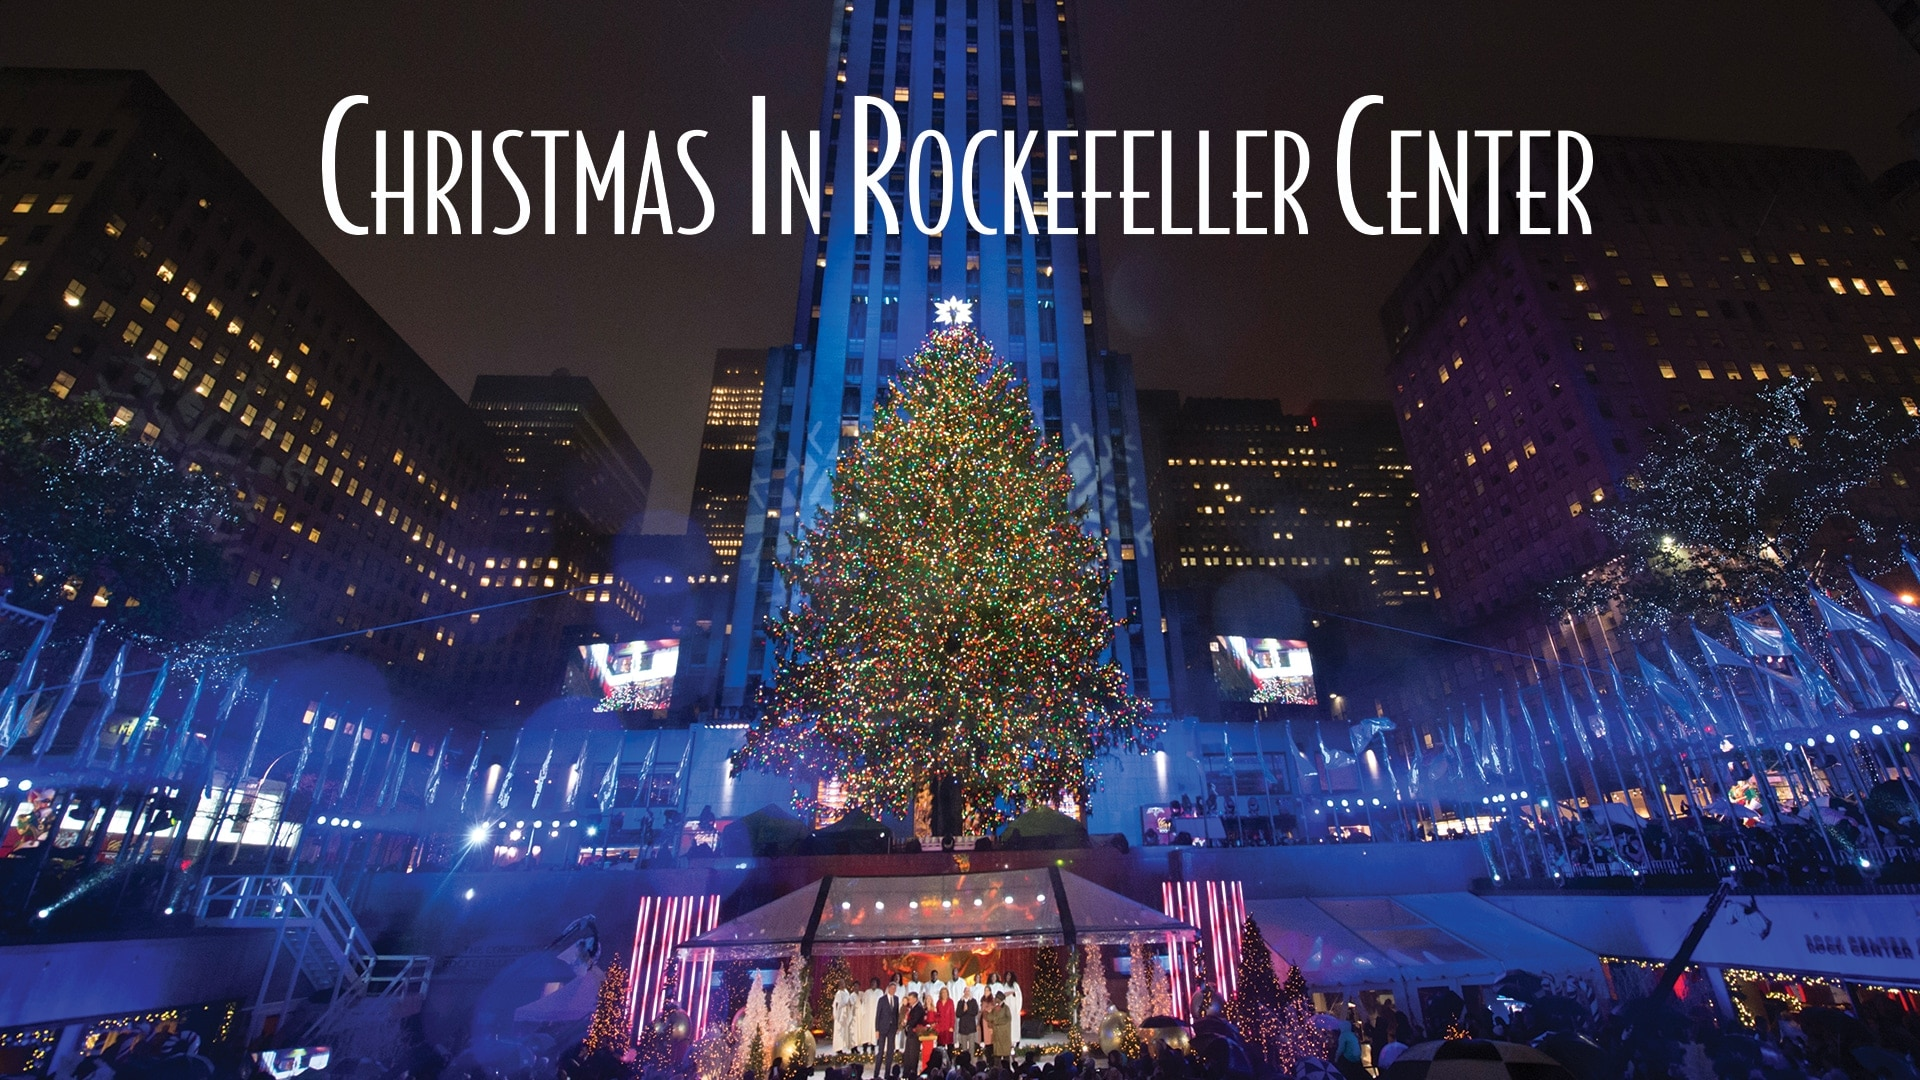 Christmas in Rockefeller Center - NBC.com